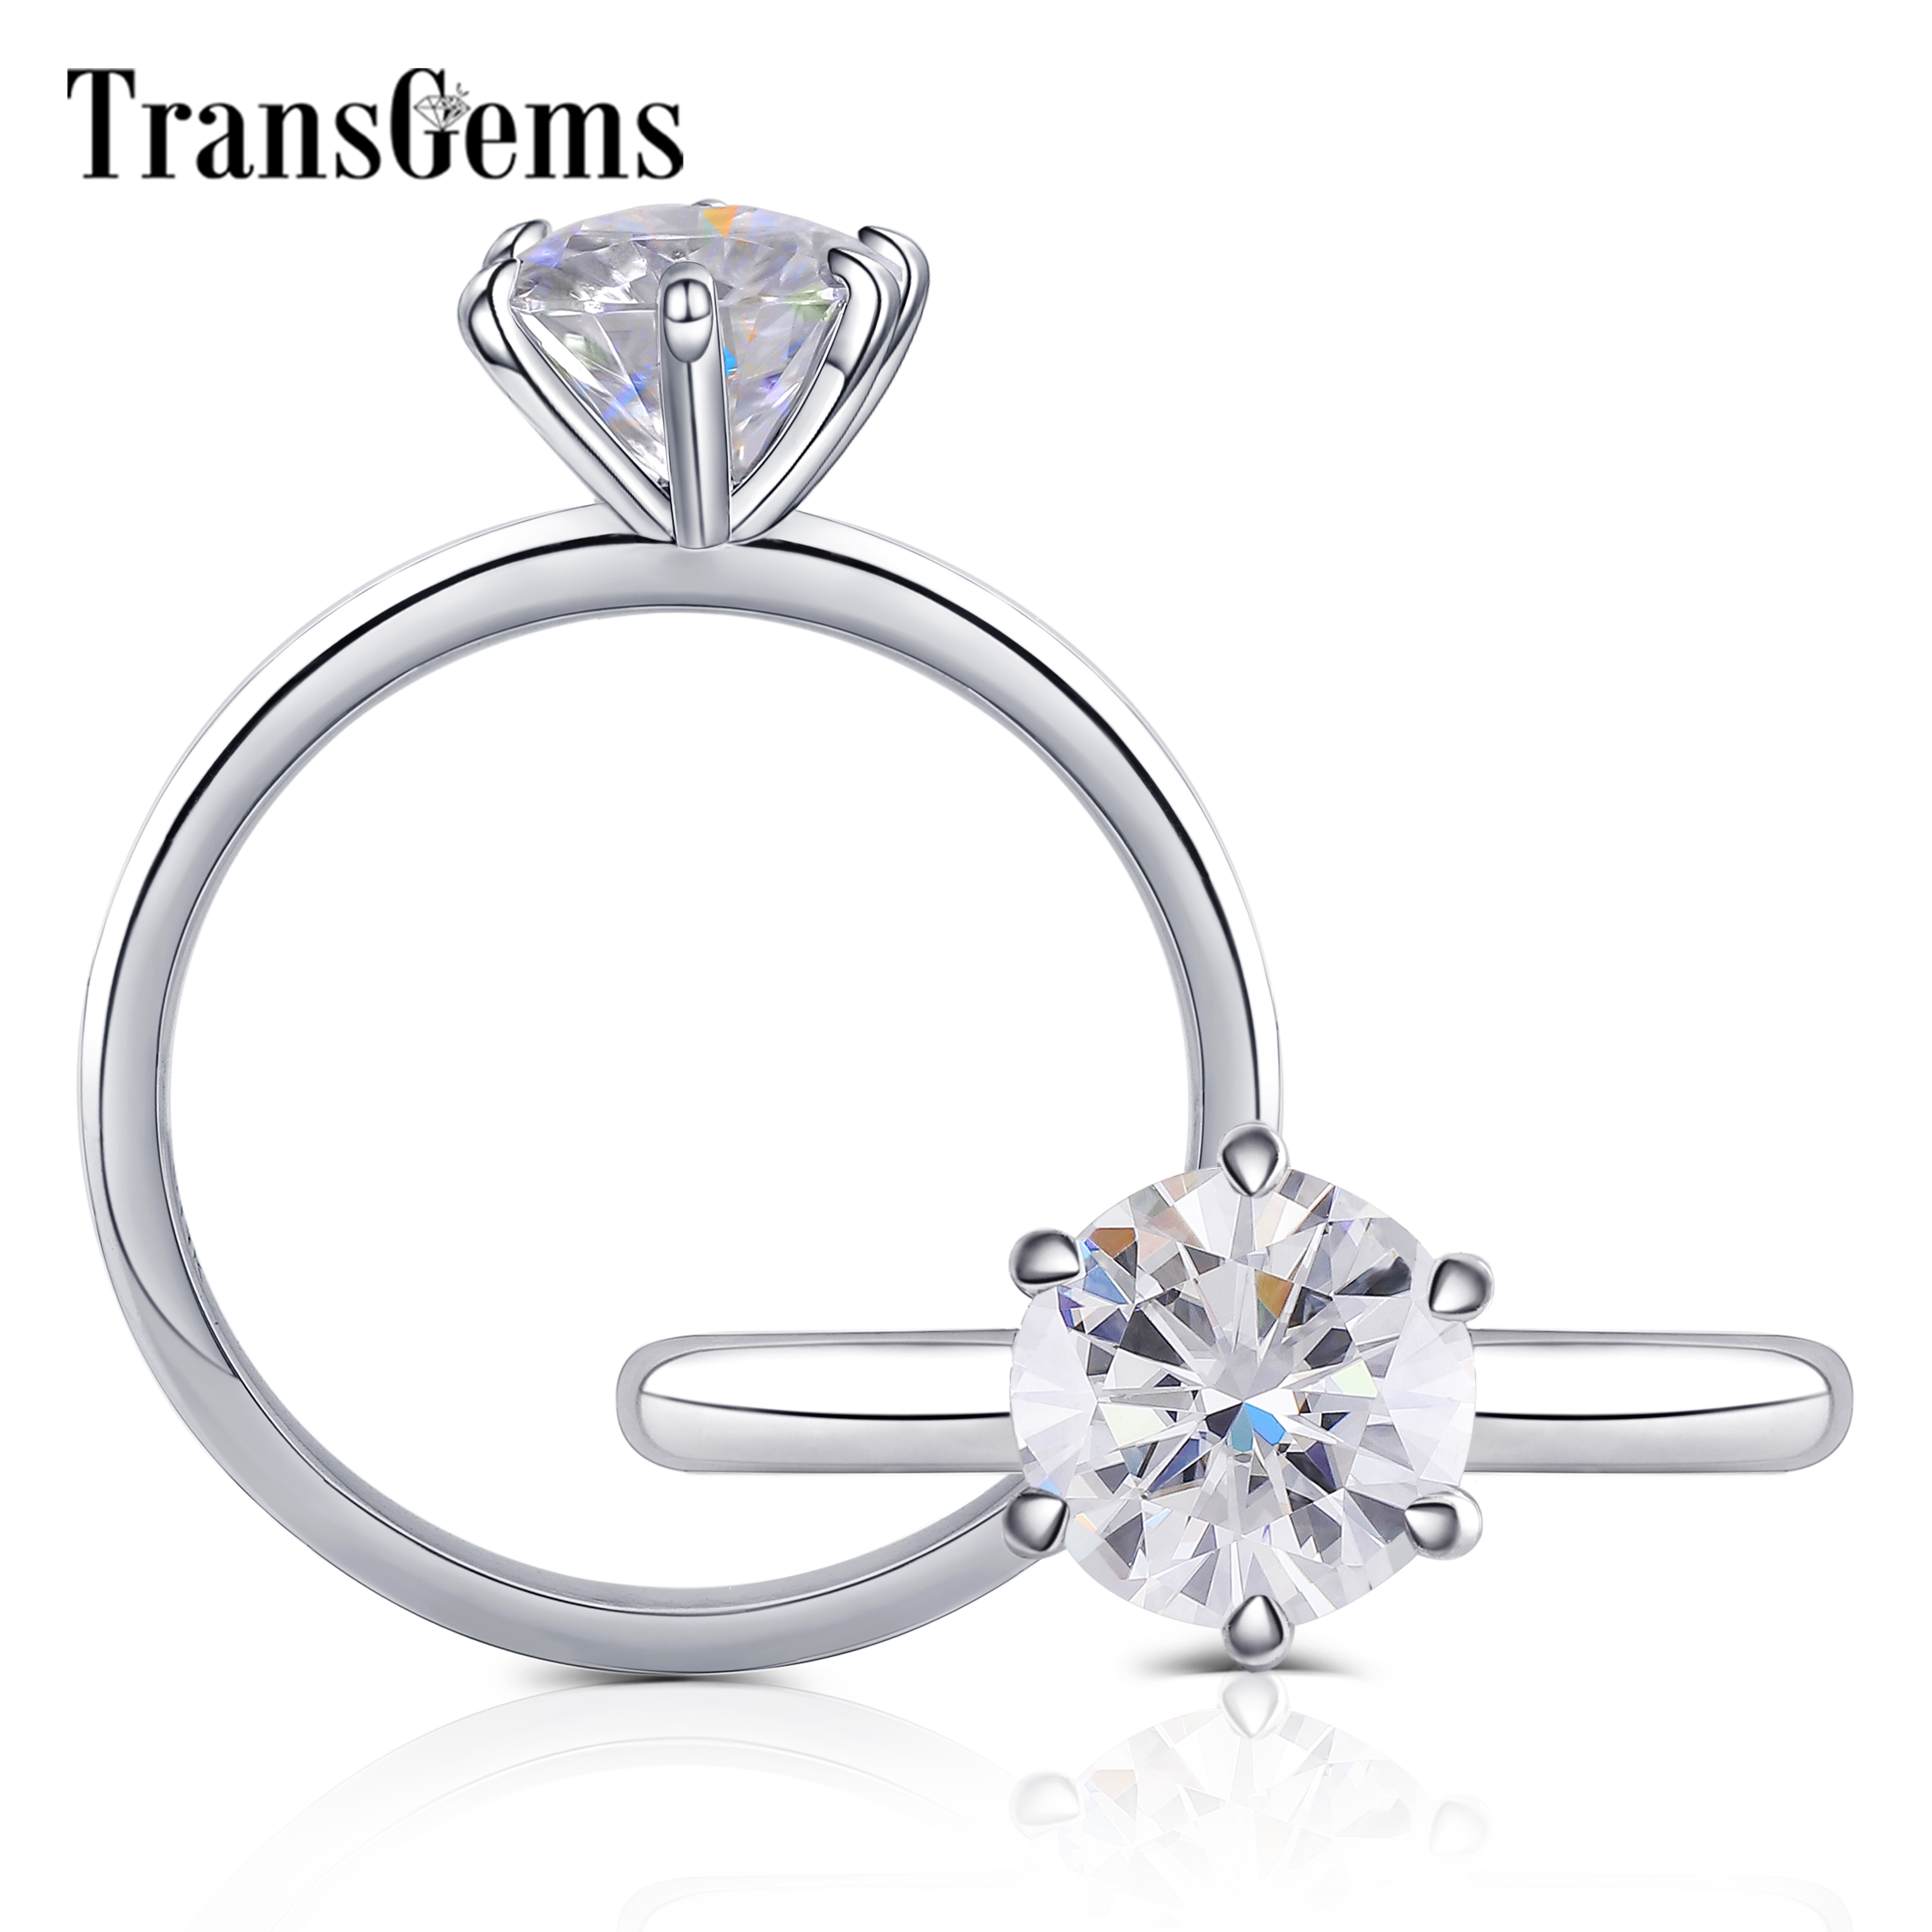 Transgems Solid 10K White Gold 1.5ct 7.5mm Round F Color Moissnaite Engagement Ring For Women Low Crown Setting Solitaire Ring